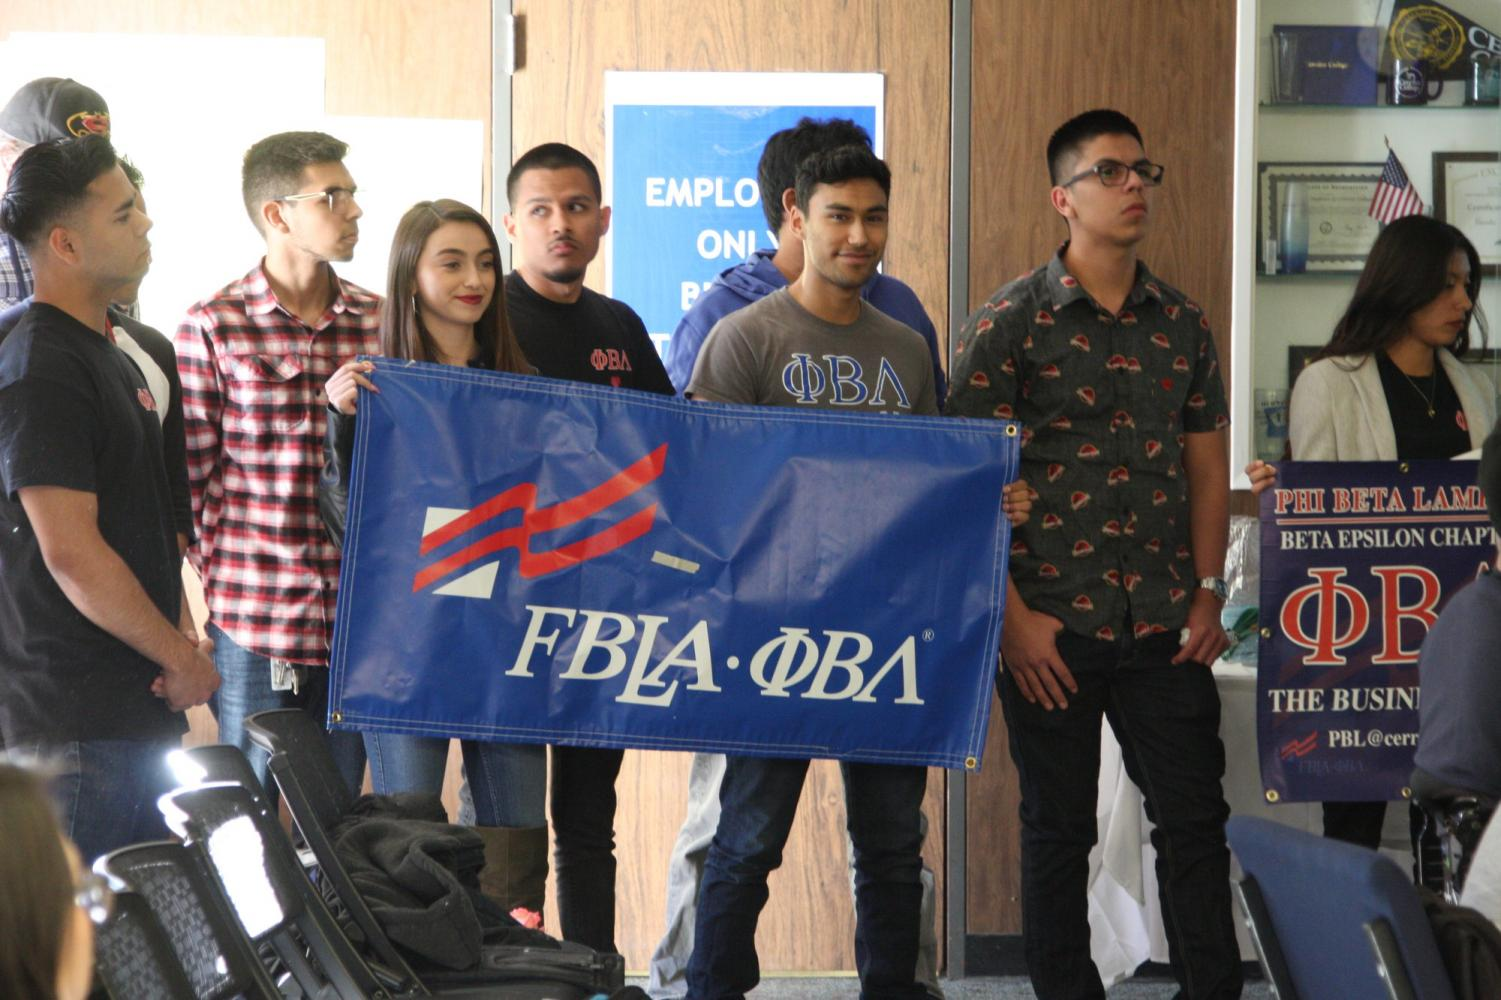 Phi Beta Lambda display their club banners during their presentation to the Associates Students of Cerritos College. They end the presentation by screaming,